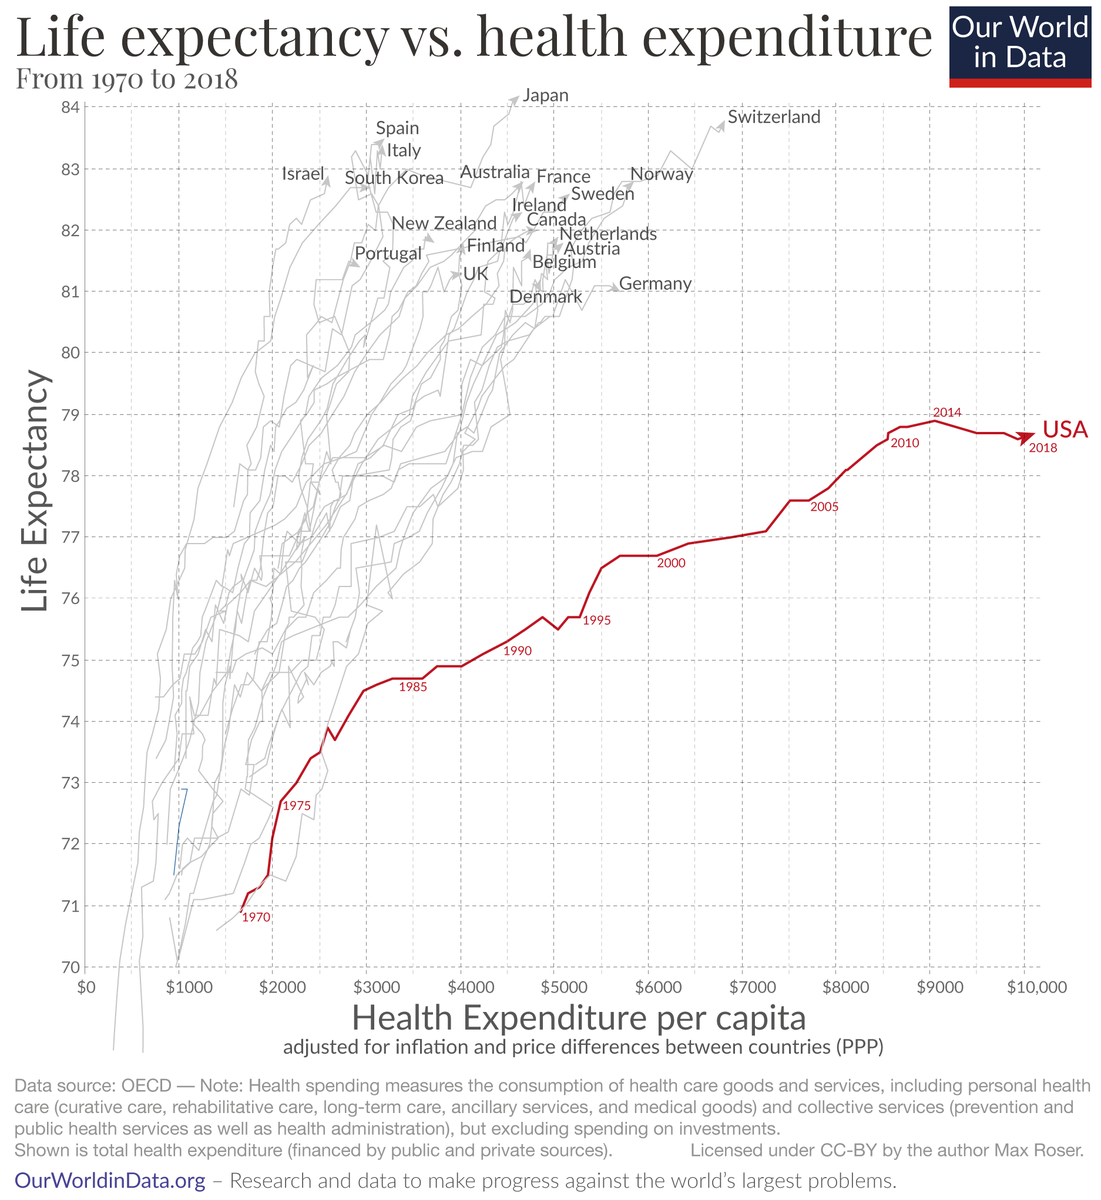 The US has flattened this curve. Why? → ourworldindata.org/us-life-expect…